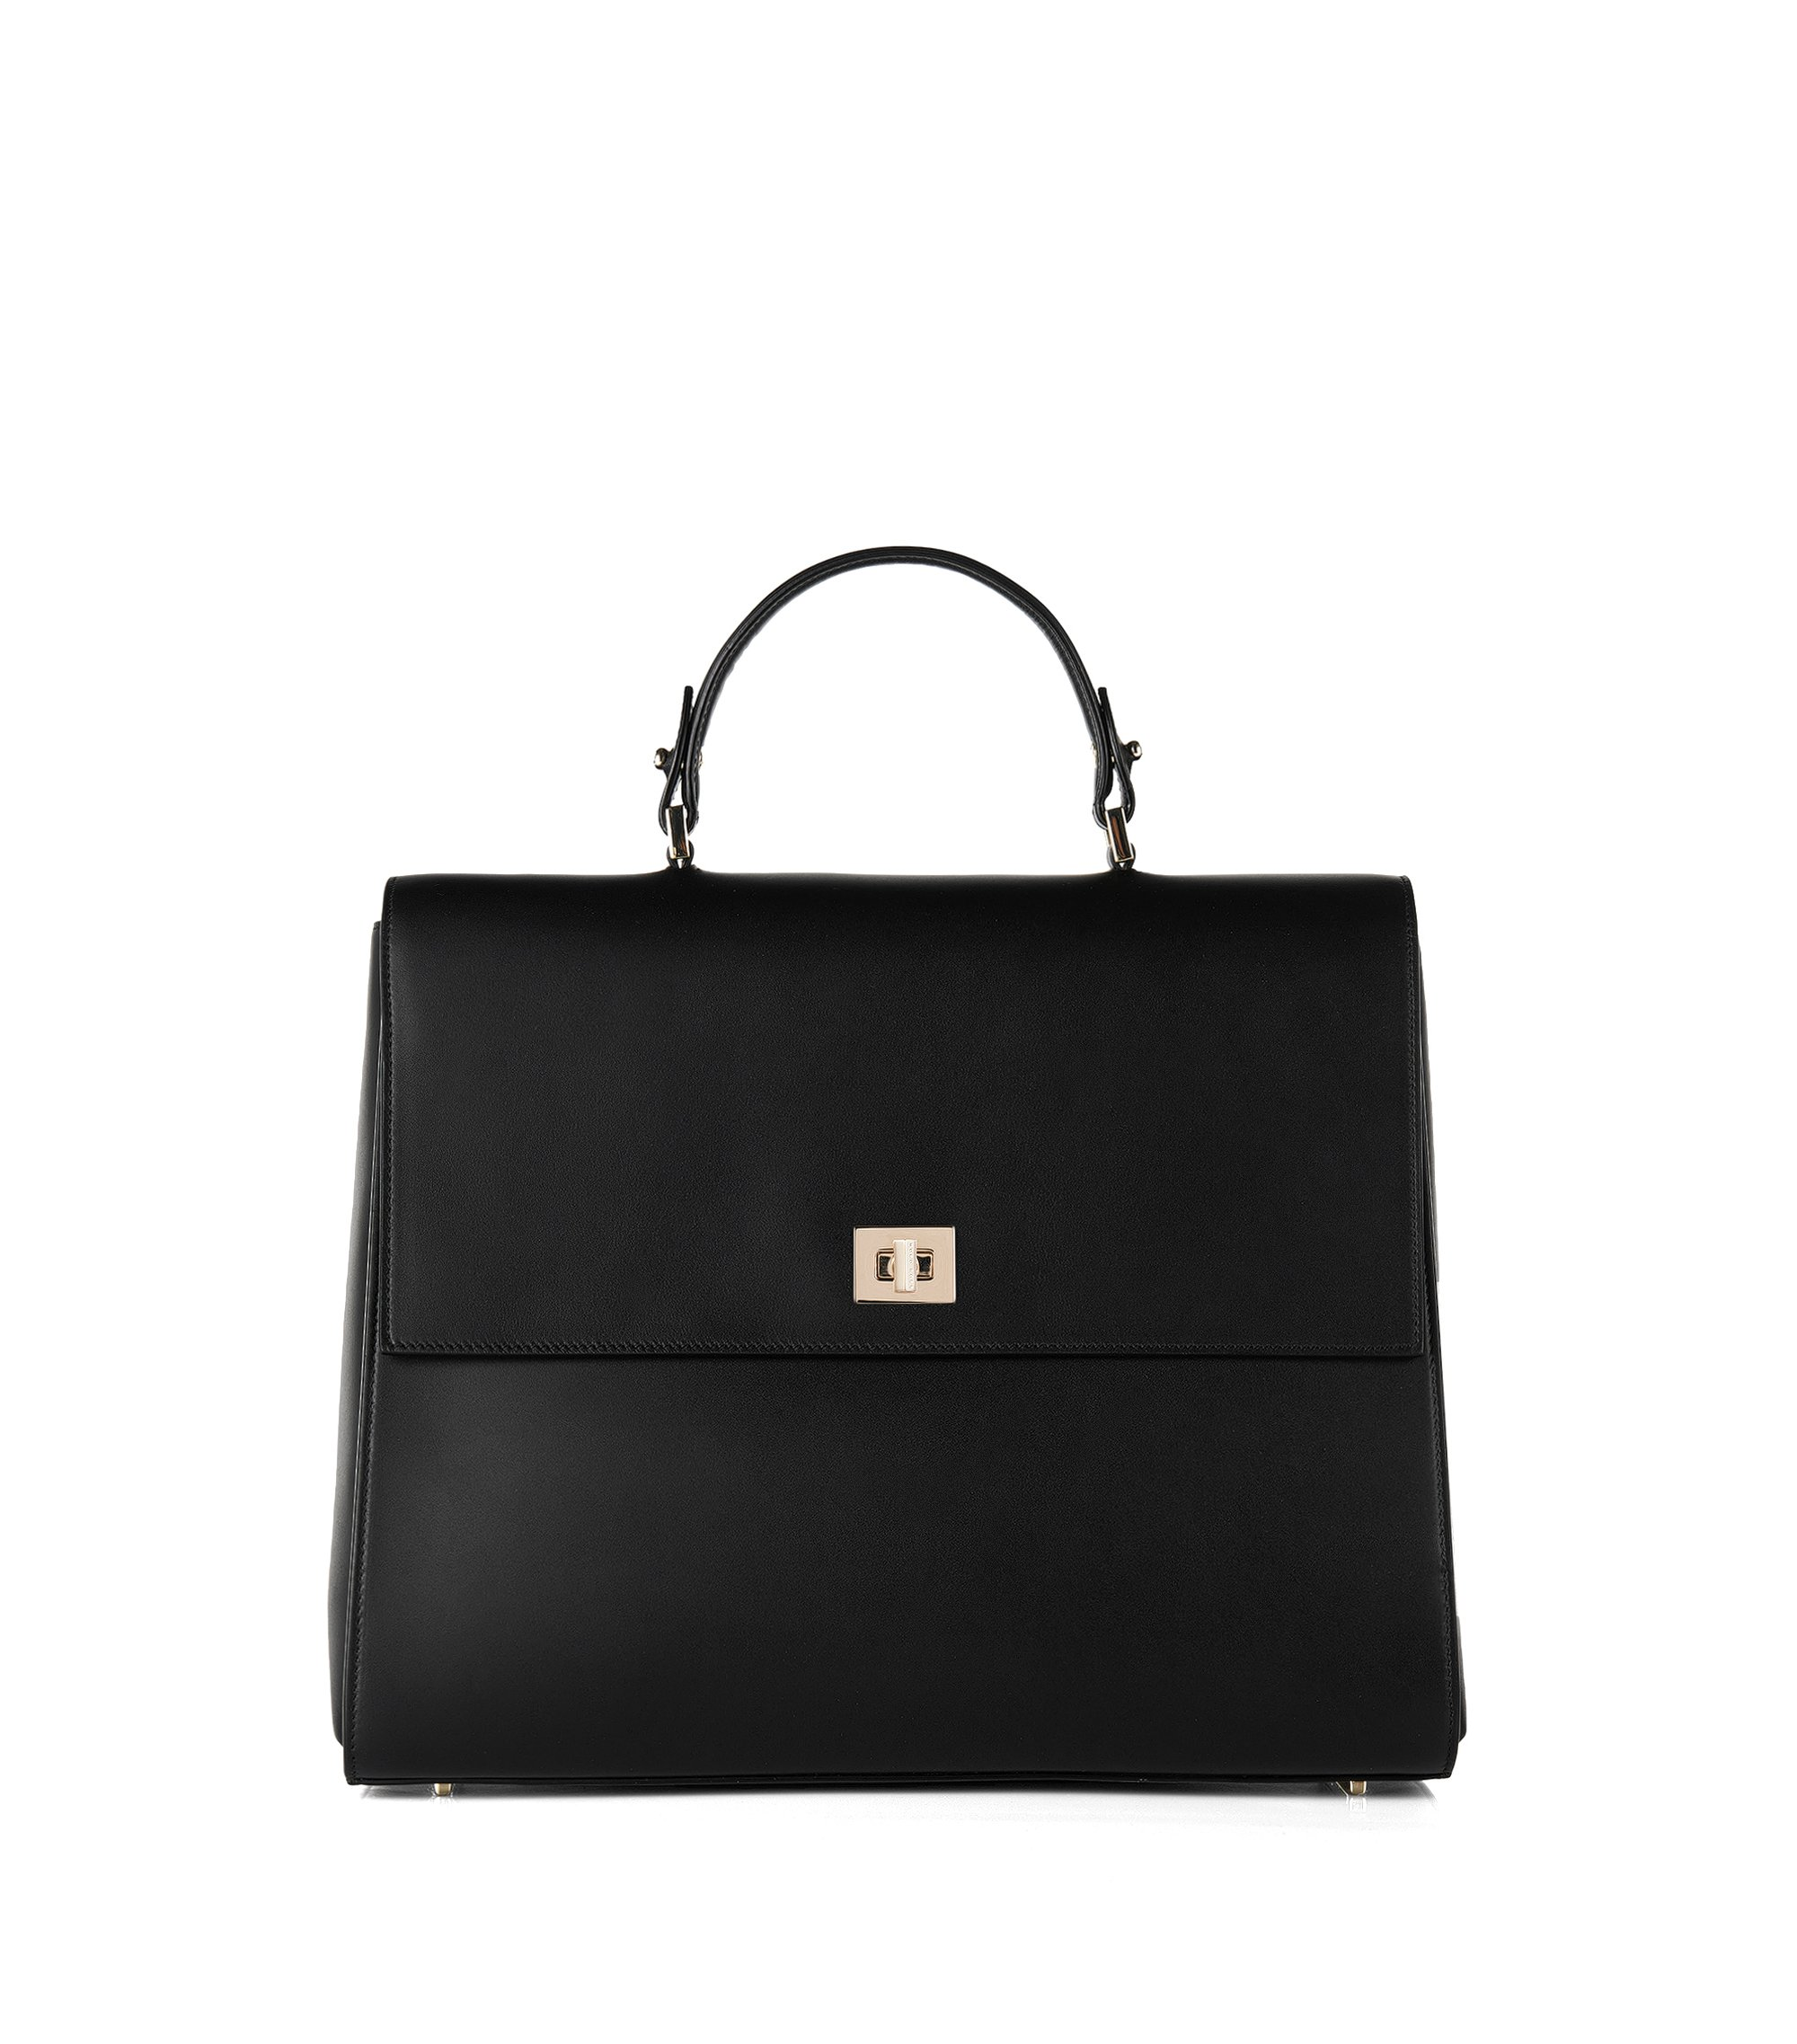 BOSS Bespoke handbag in smooth leather, Black